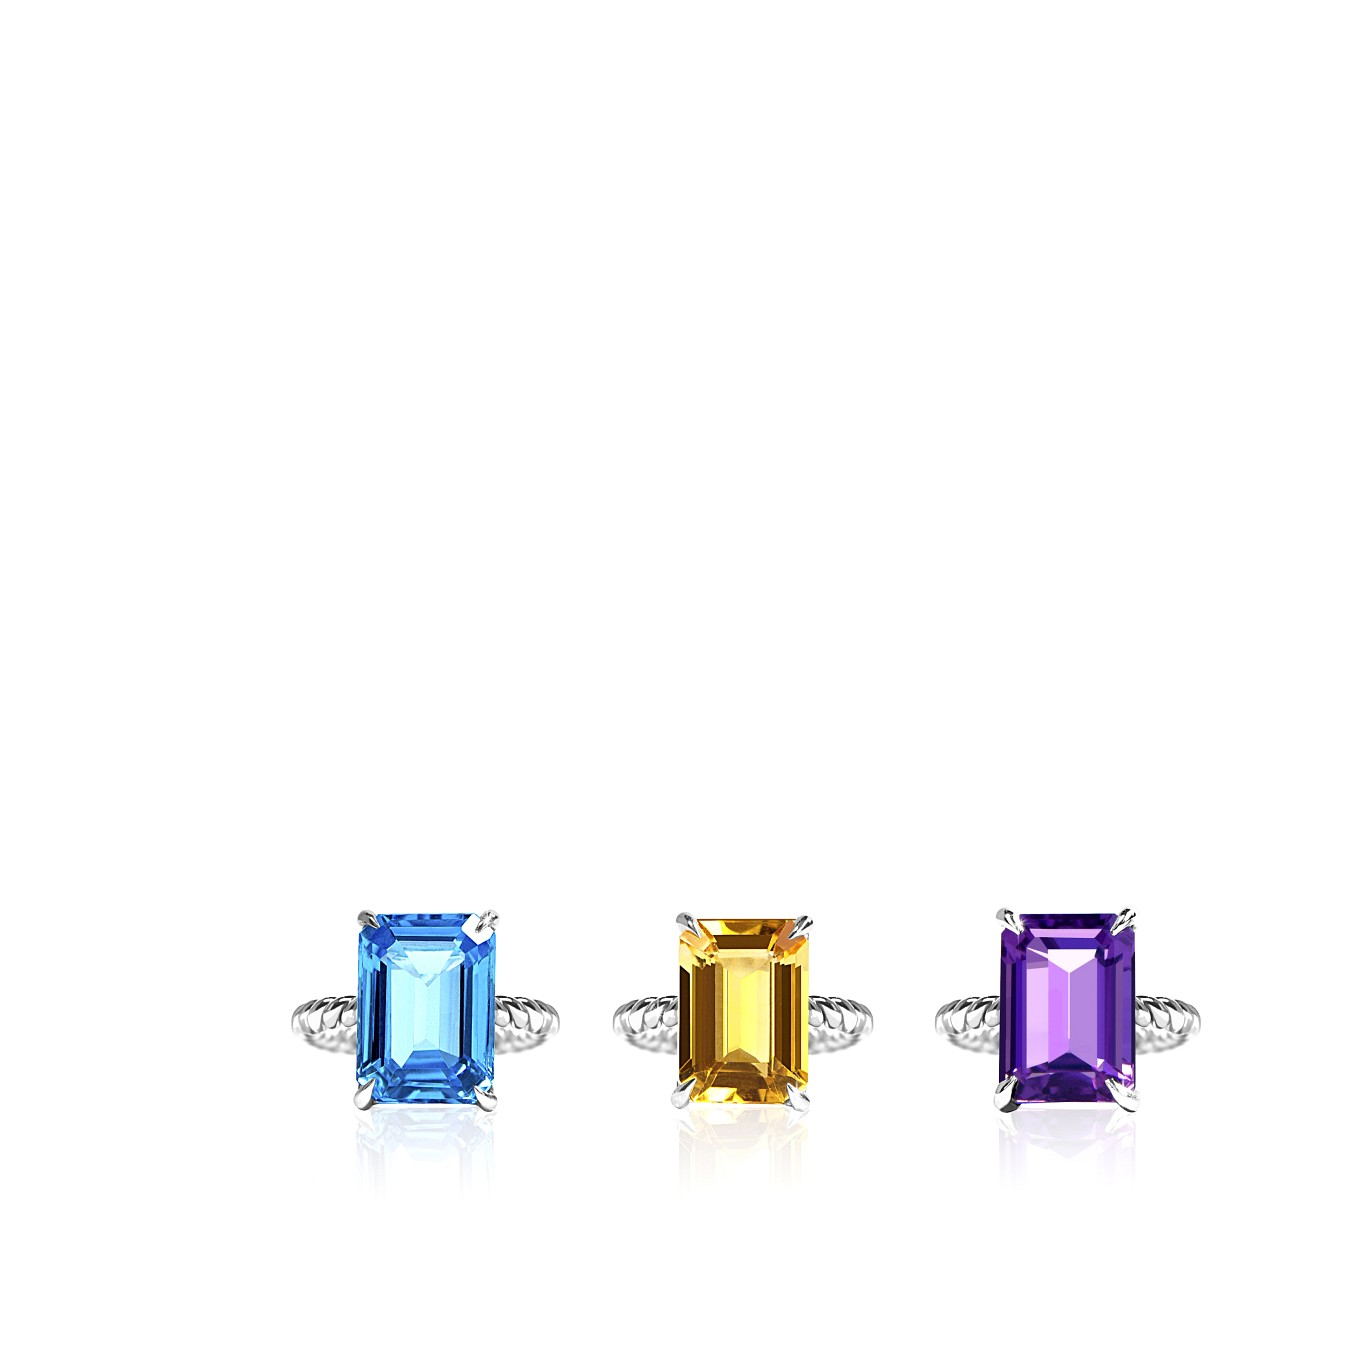 TOPAZ, CITRINE, & AMETHYST BLUE TOPAZ EMERALD CUT BRAID RINGS IN STERLING SILVER